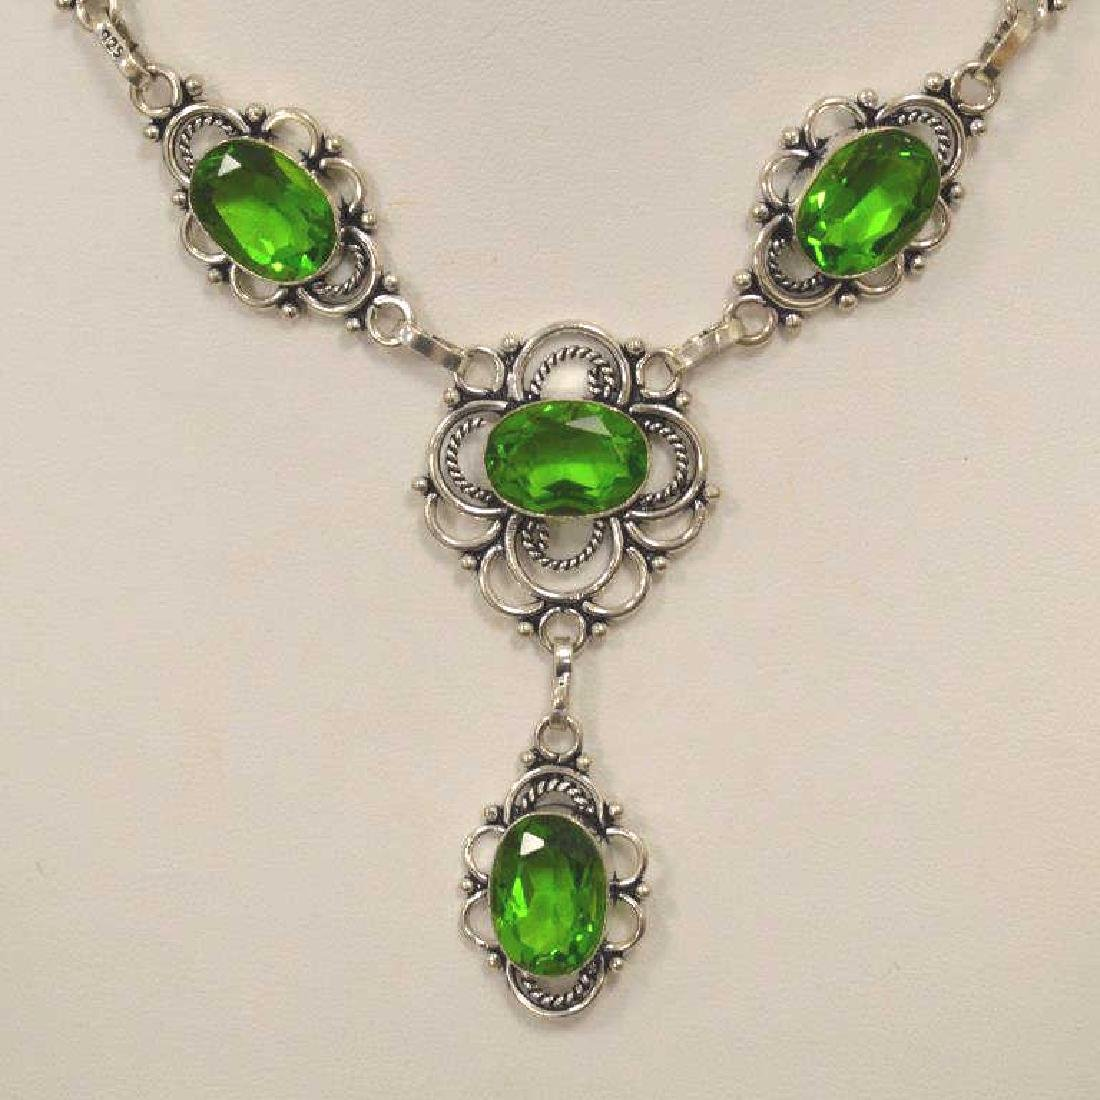 Electric green quartz necklace - 2